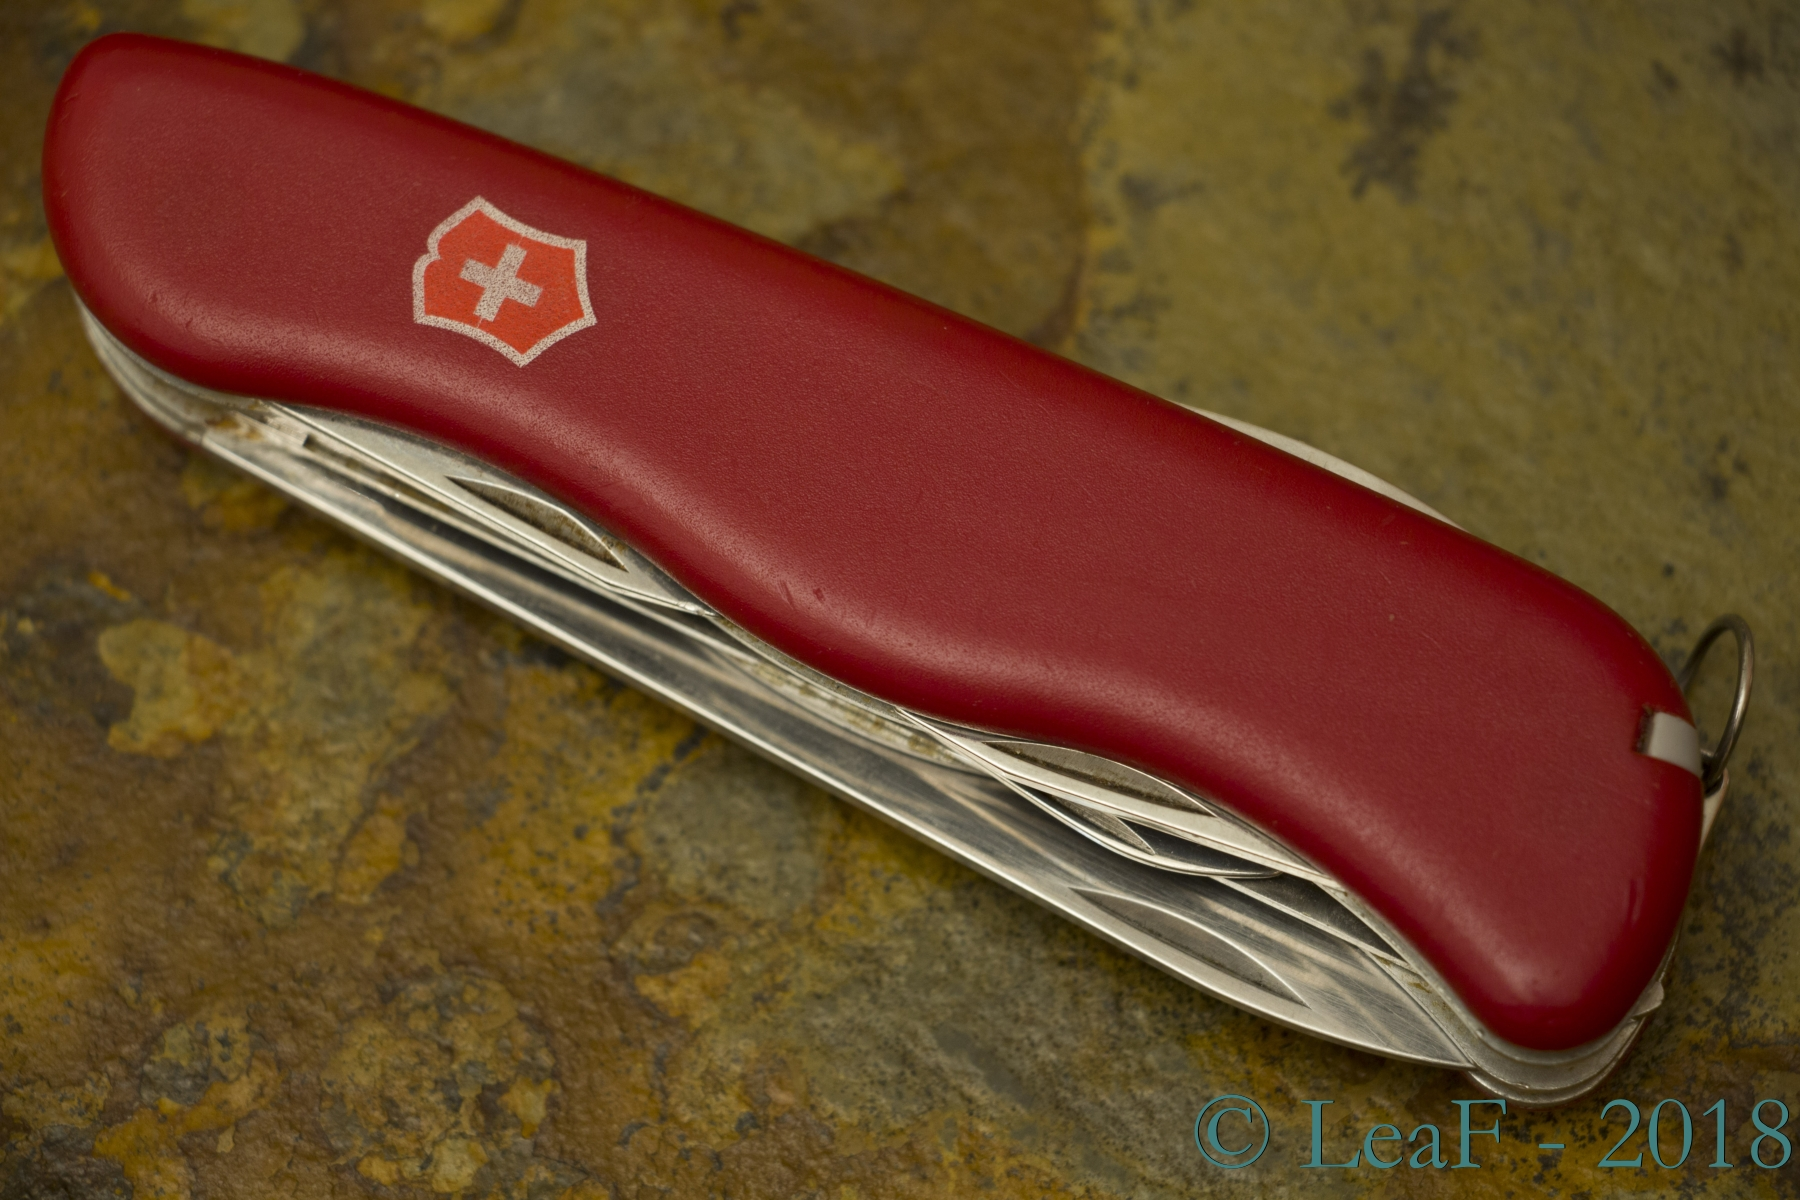 344 Outrider Leaf S Victorinox Knives Collection